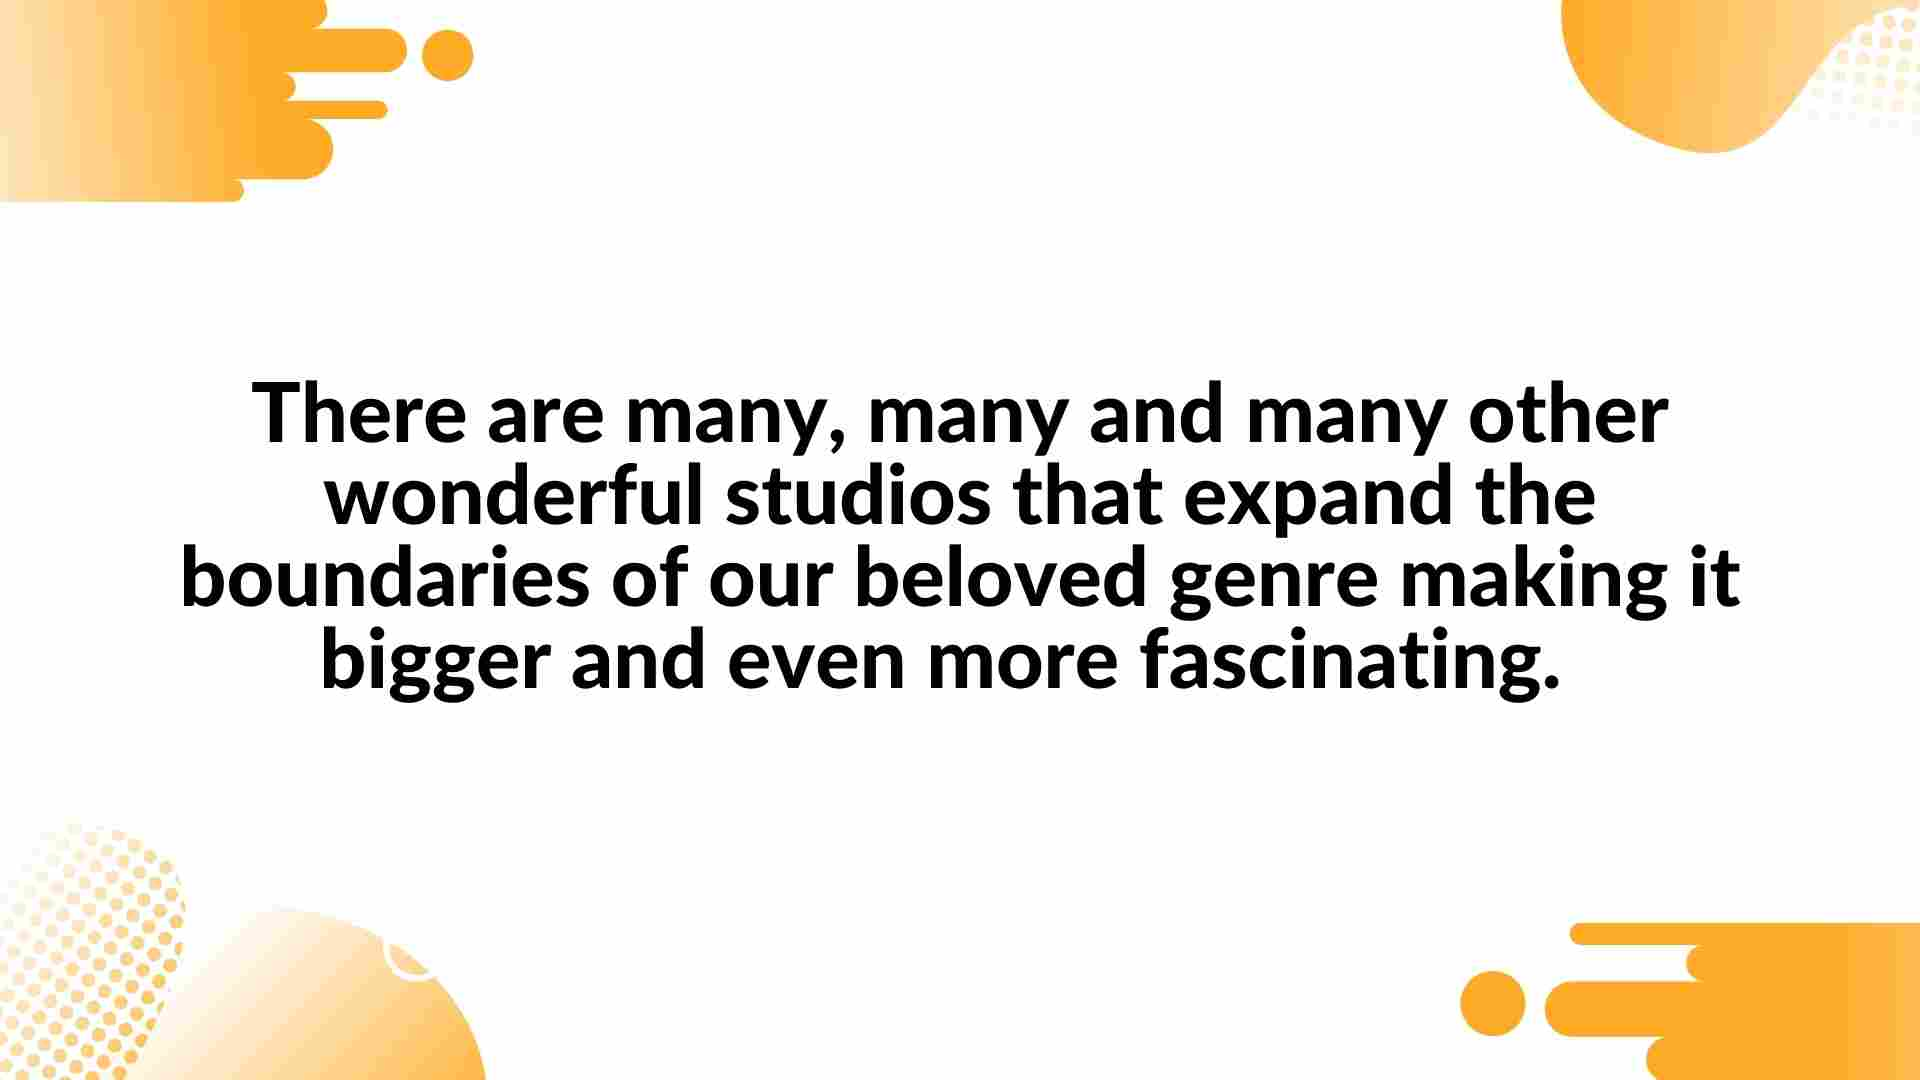 There are many, many and many other wonderful studios that expand the boundaries of our beloved genre making it bigger and even more fascinating.